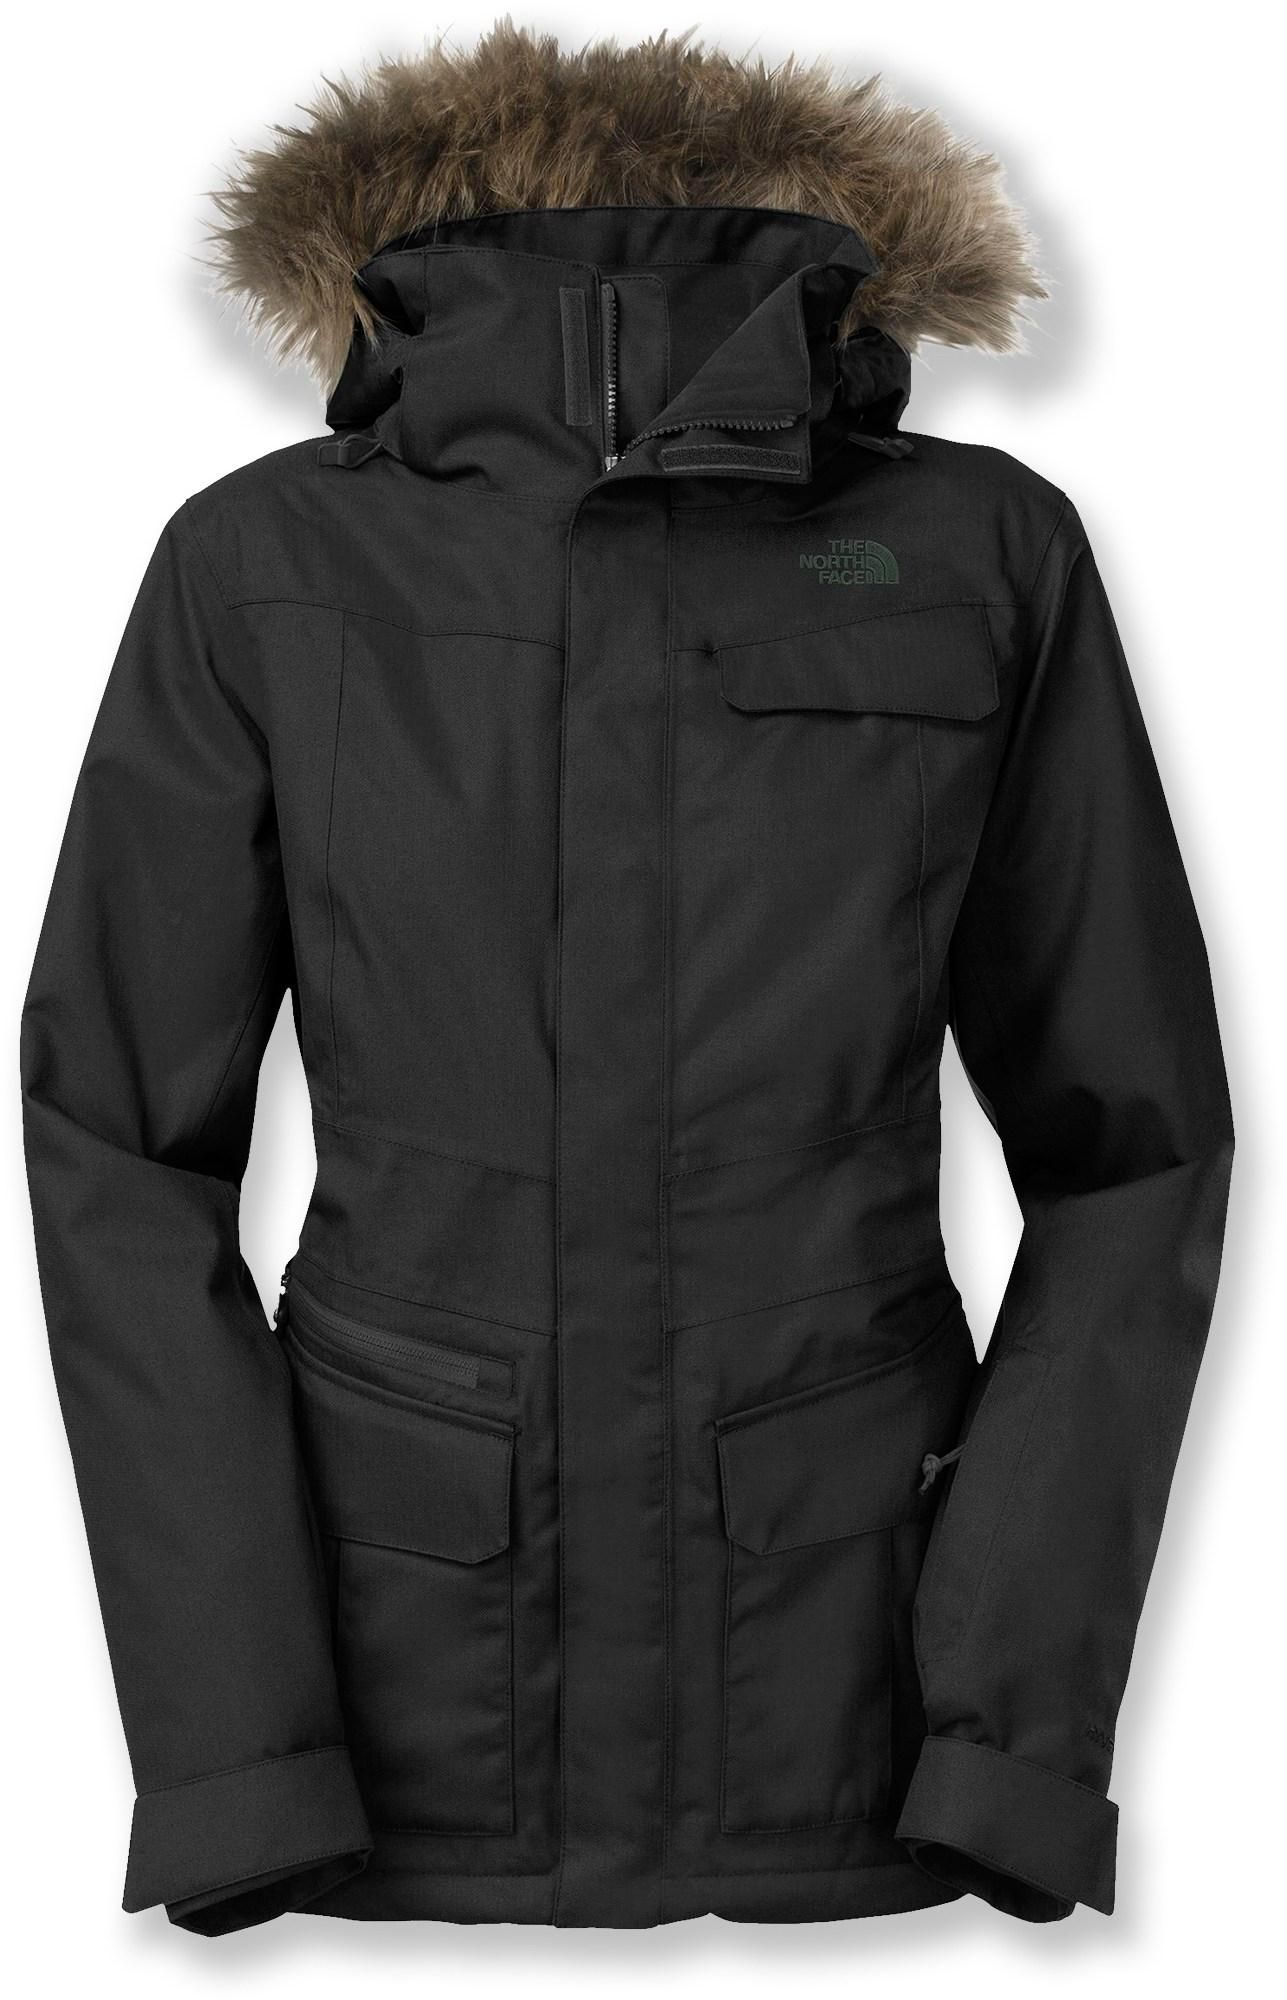 022b57096b Love this cut and fit! The North Face Baker Delux Insulated Jacket -  Women s.